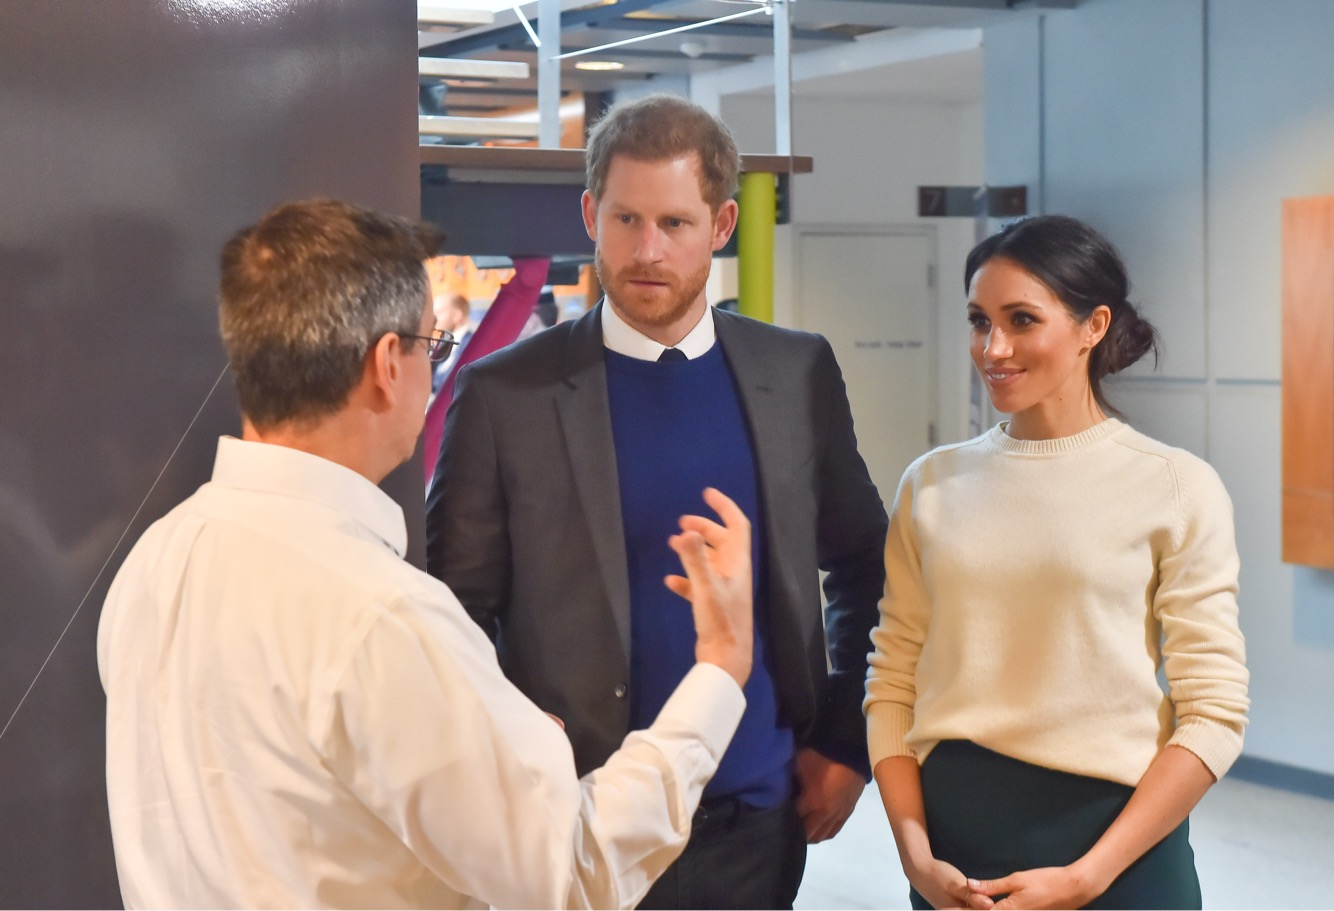 Prince Harry and Ms. Markle visit Catalyst Inc